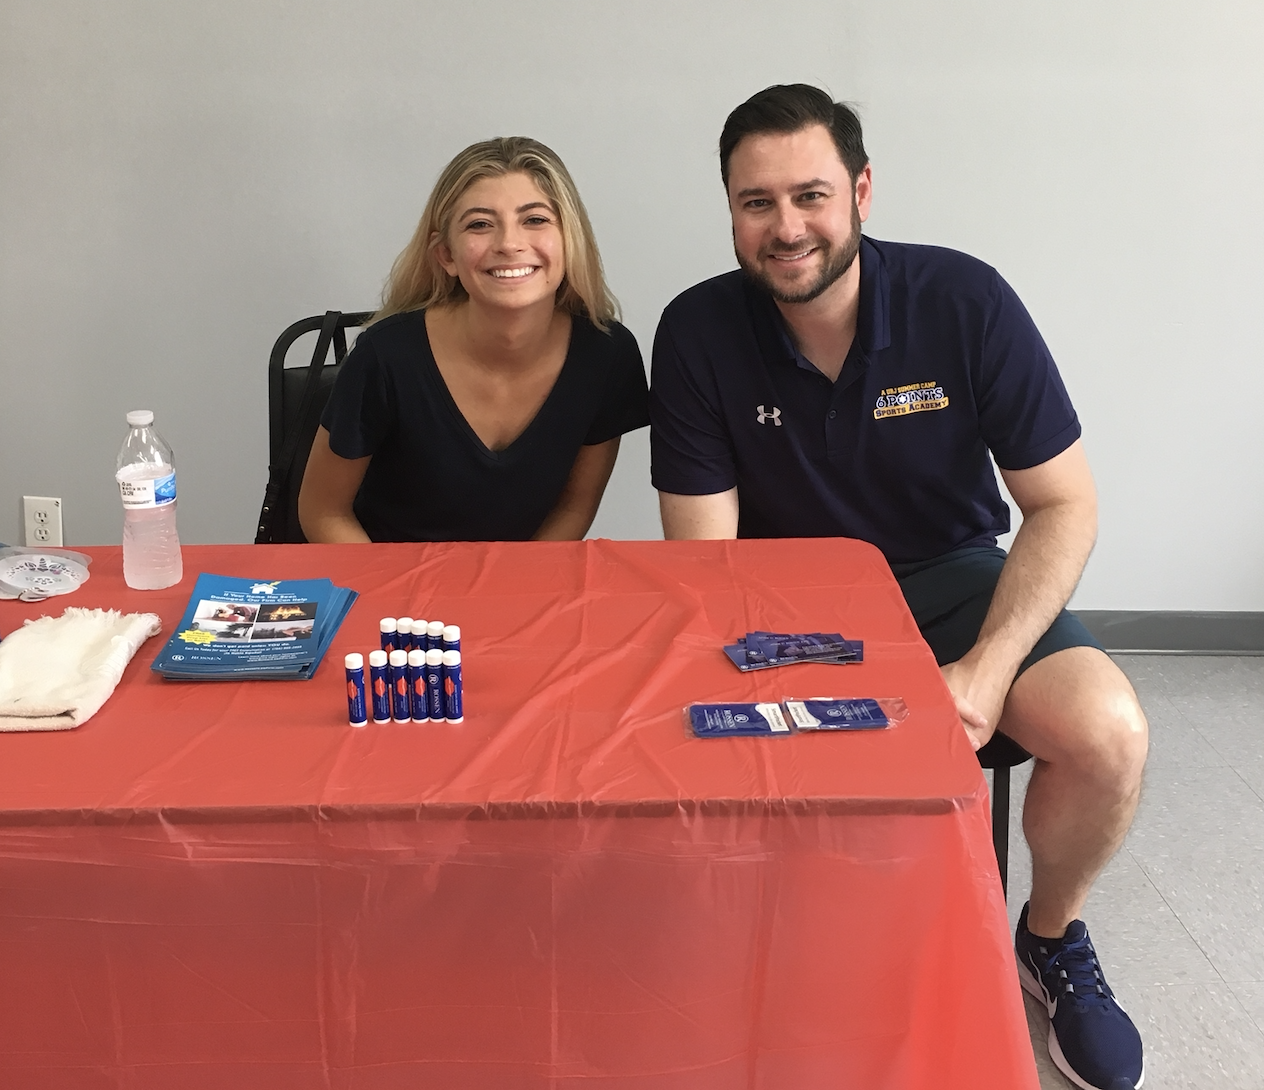 Criminal lawyer adam rossen with marketing assistant Olivia at a community event in coconut creek, florida